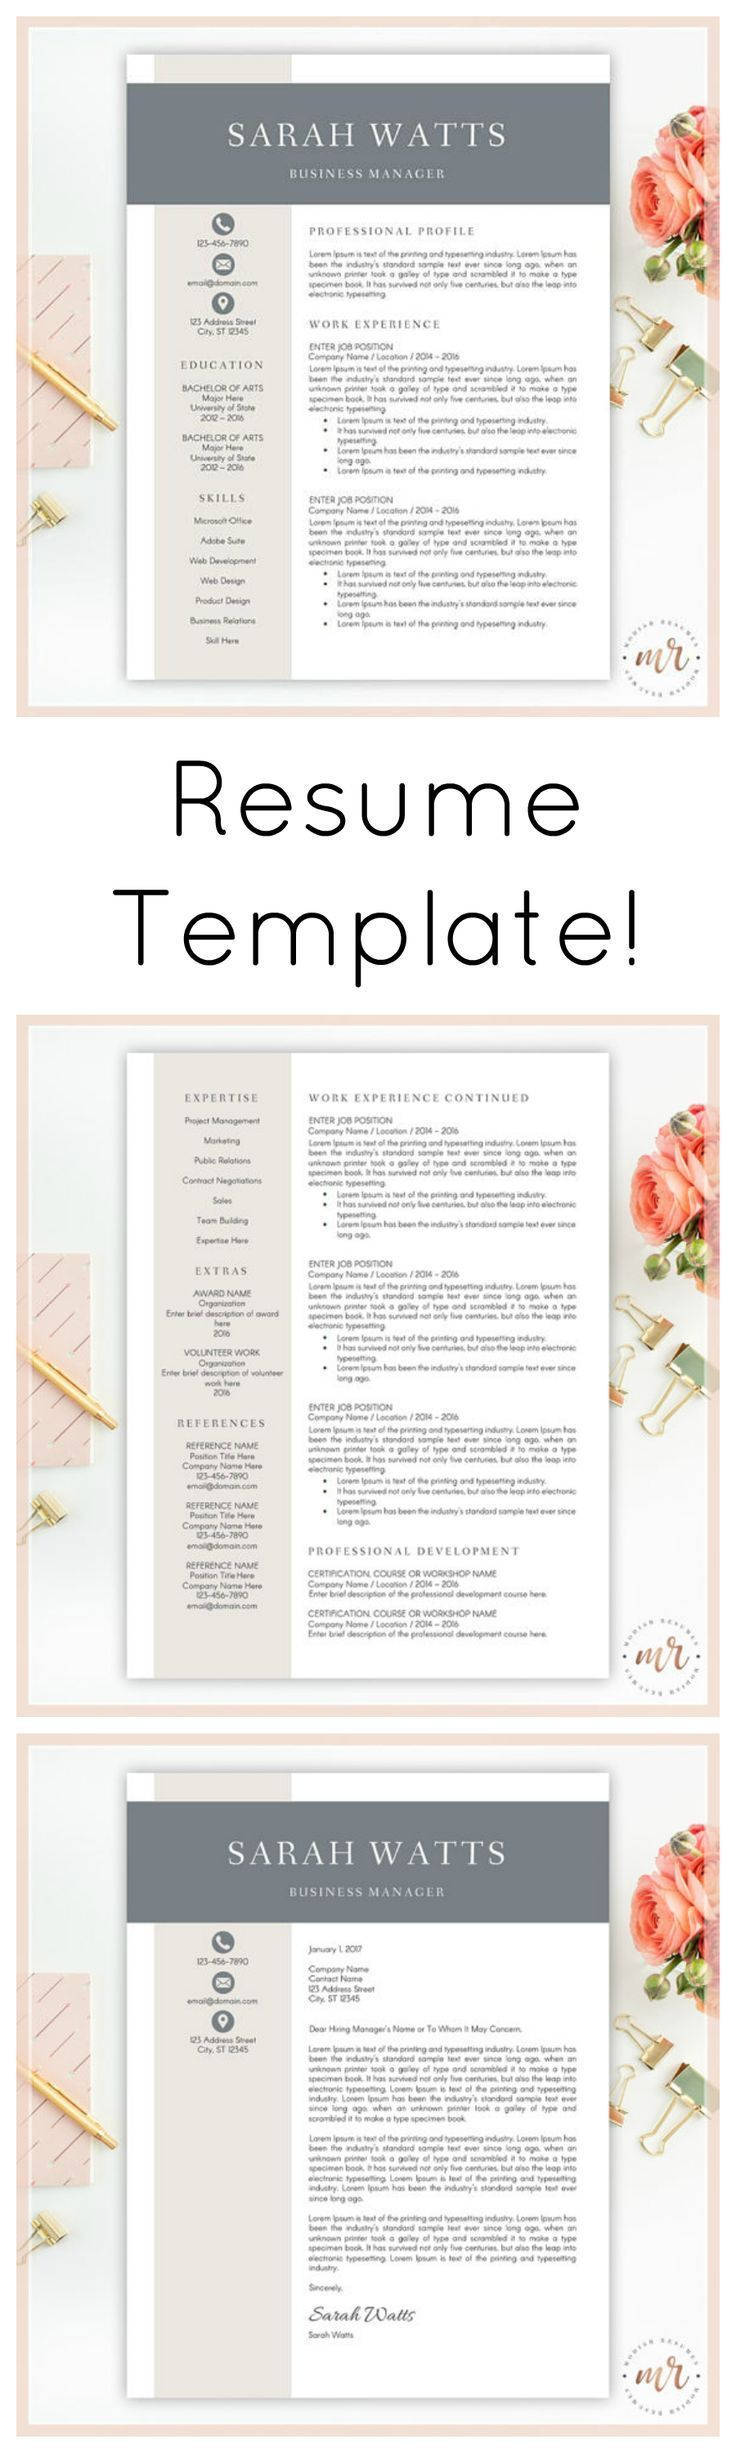 Love this stylish and professional resume template